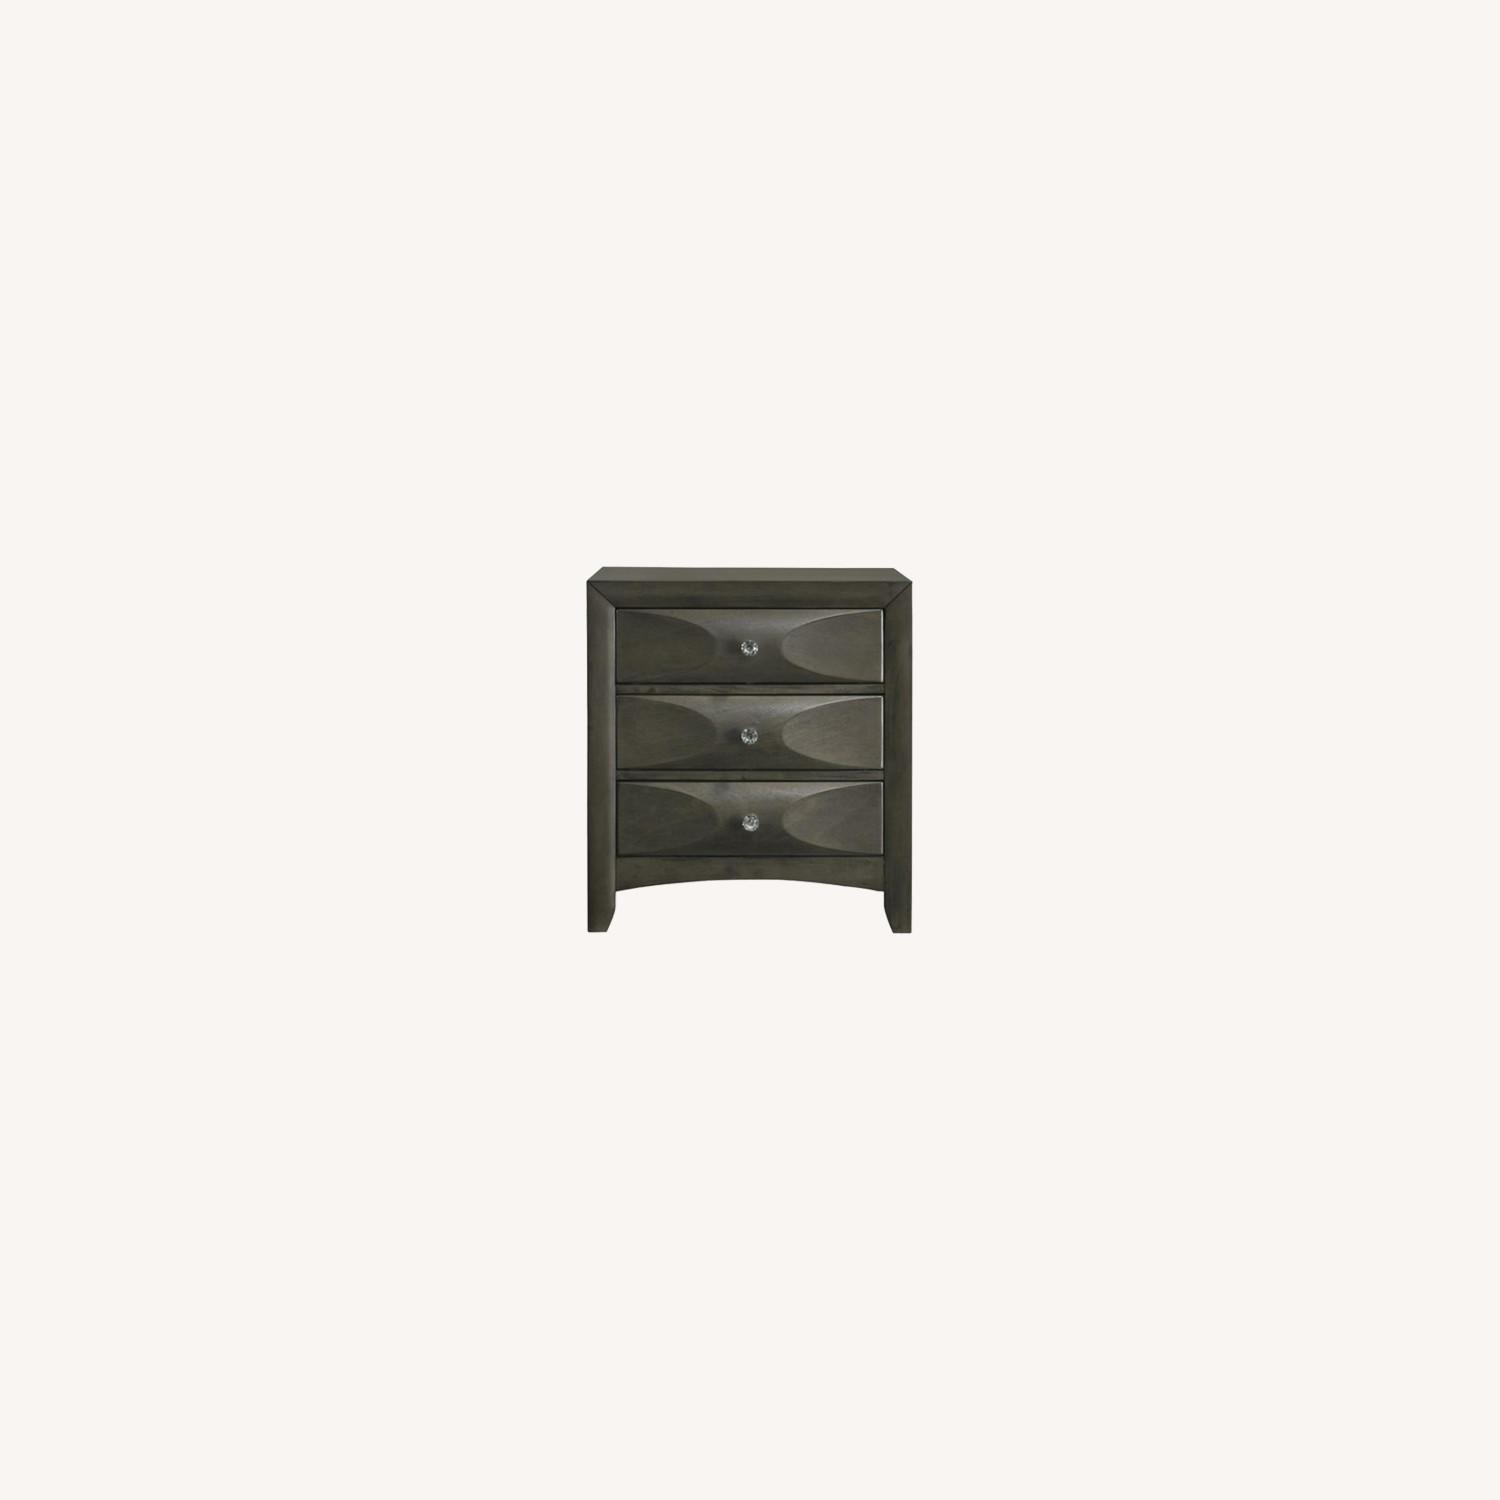 Nightstand In Mod Grey Finish W/ 3D Bow Tie Fronts - image-6